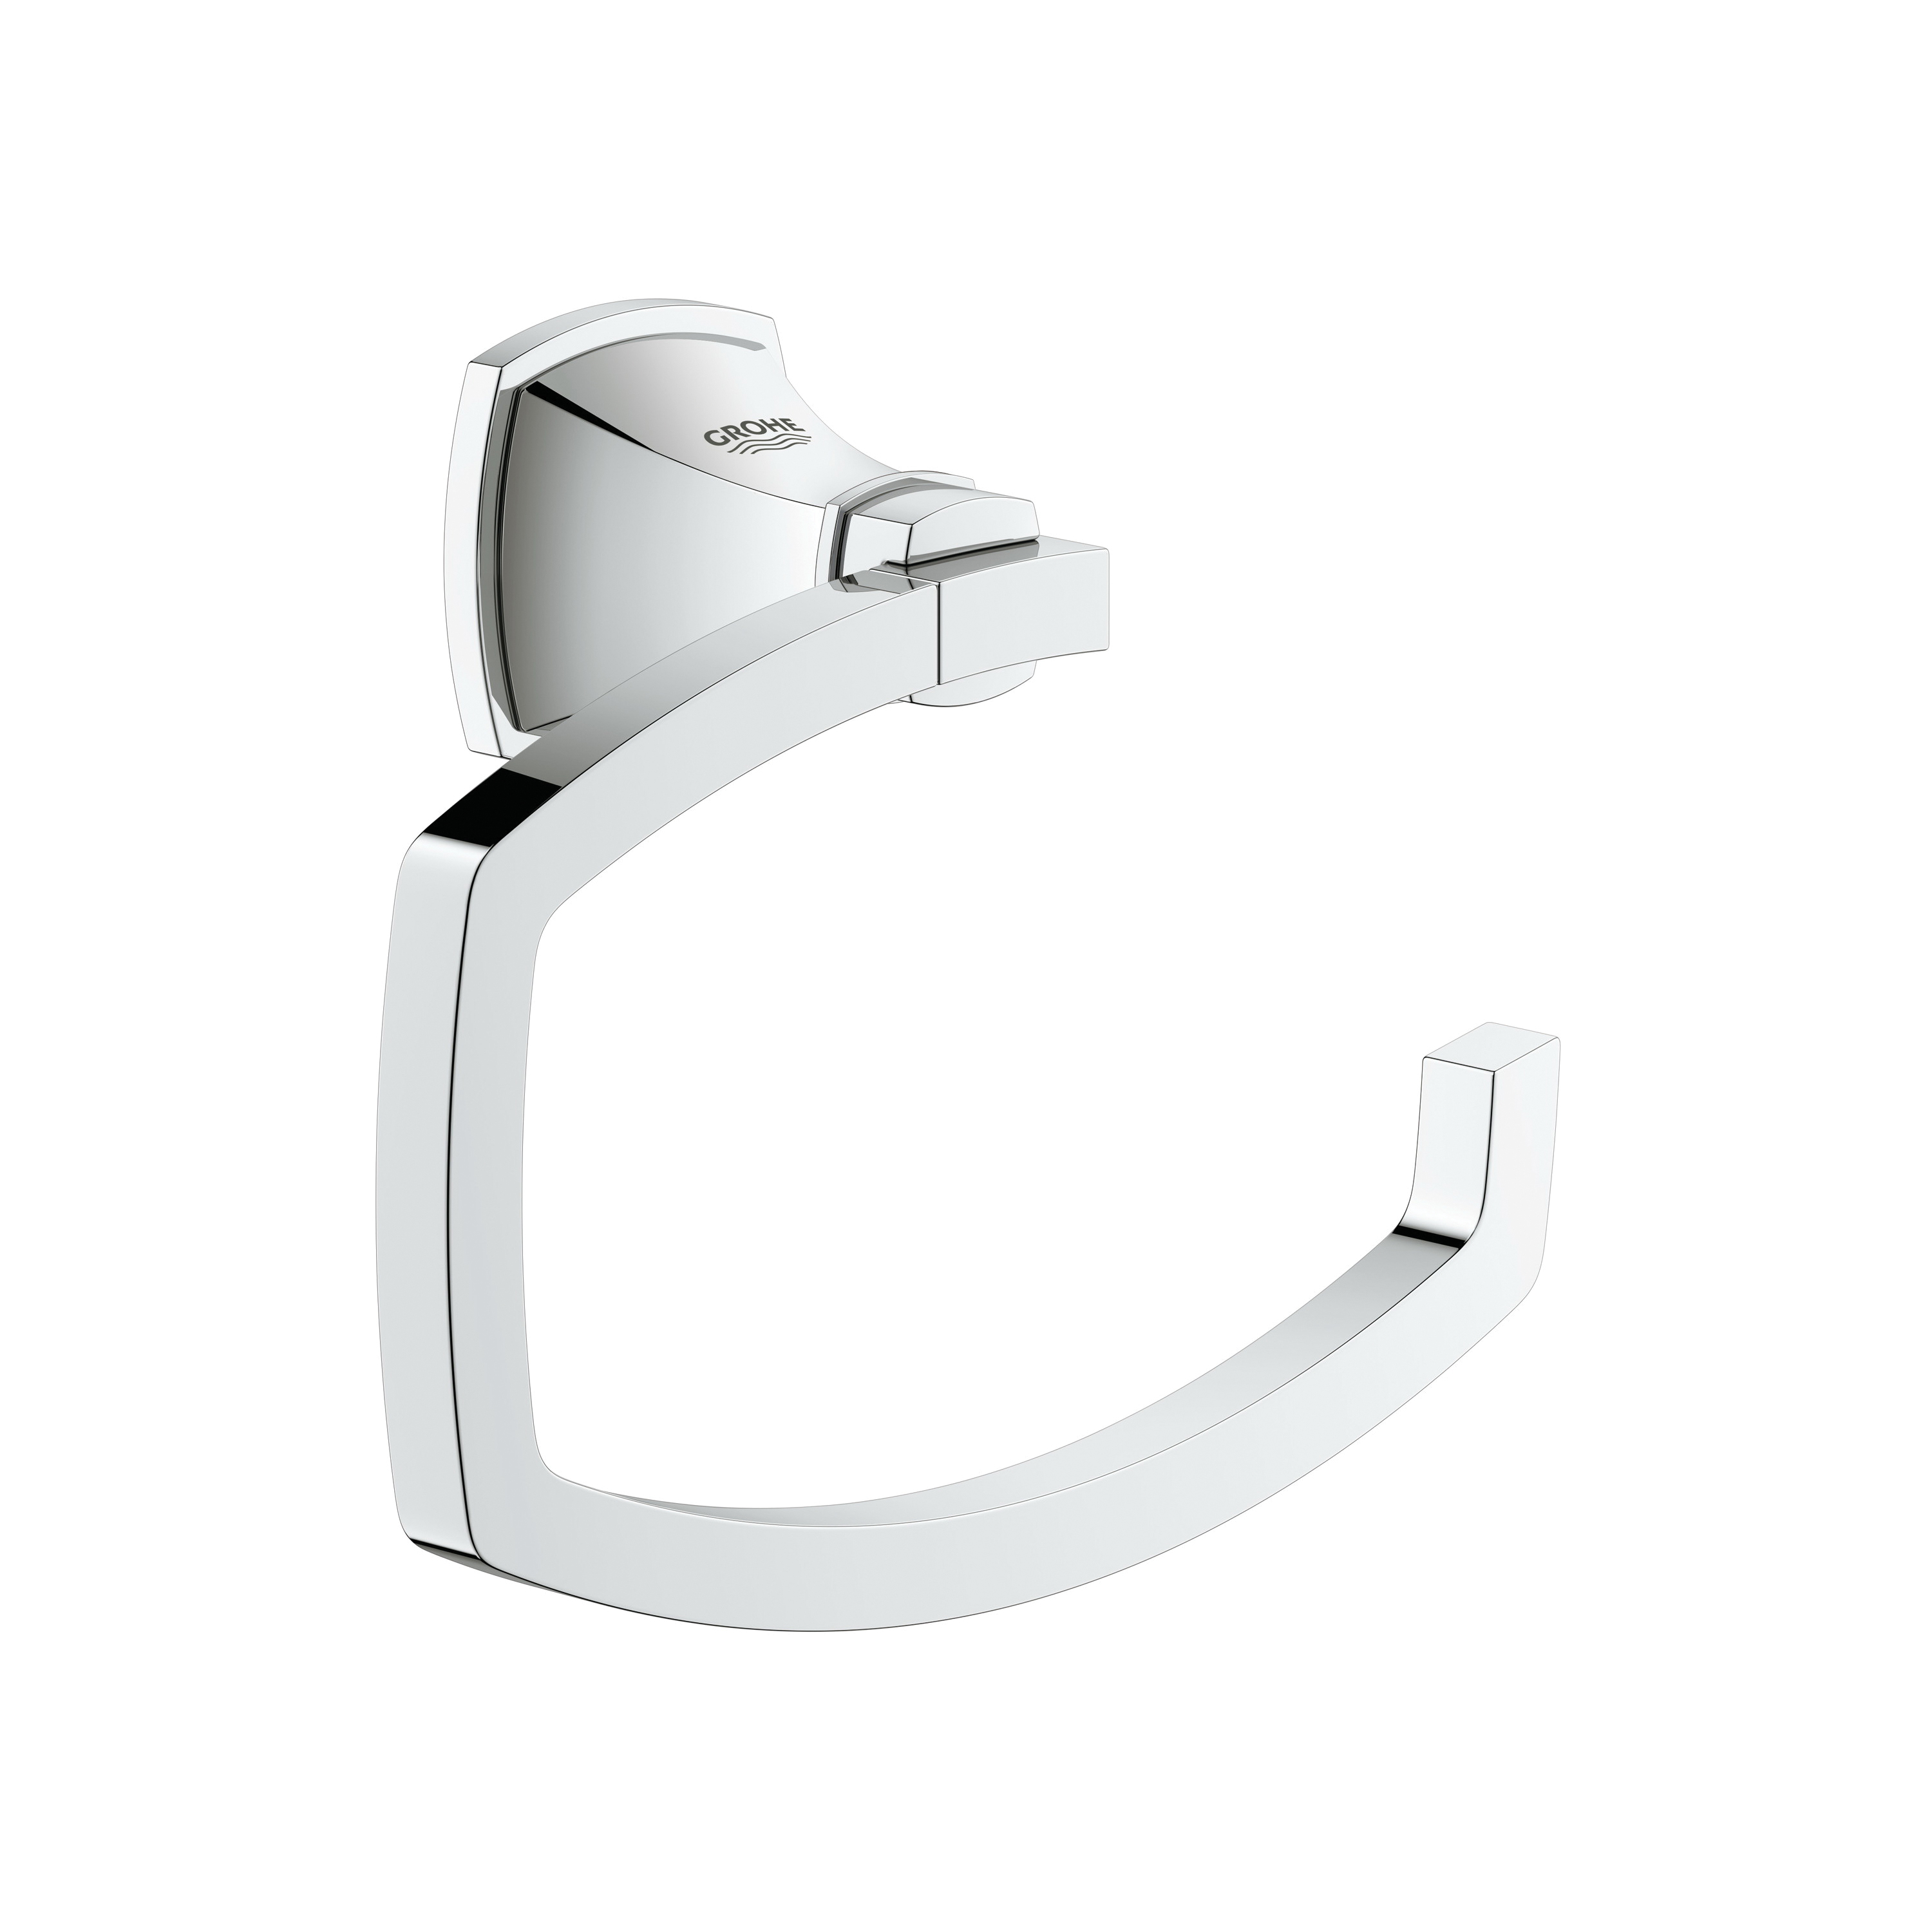 GROHE 40625000 Grandera™ Toilet Paper Holder, 4.667 in H, Brass, Chrome Plated, Import